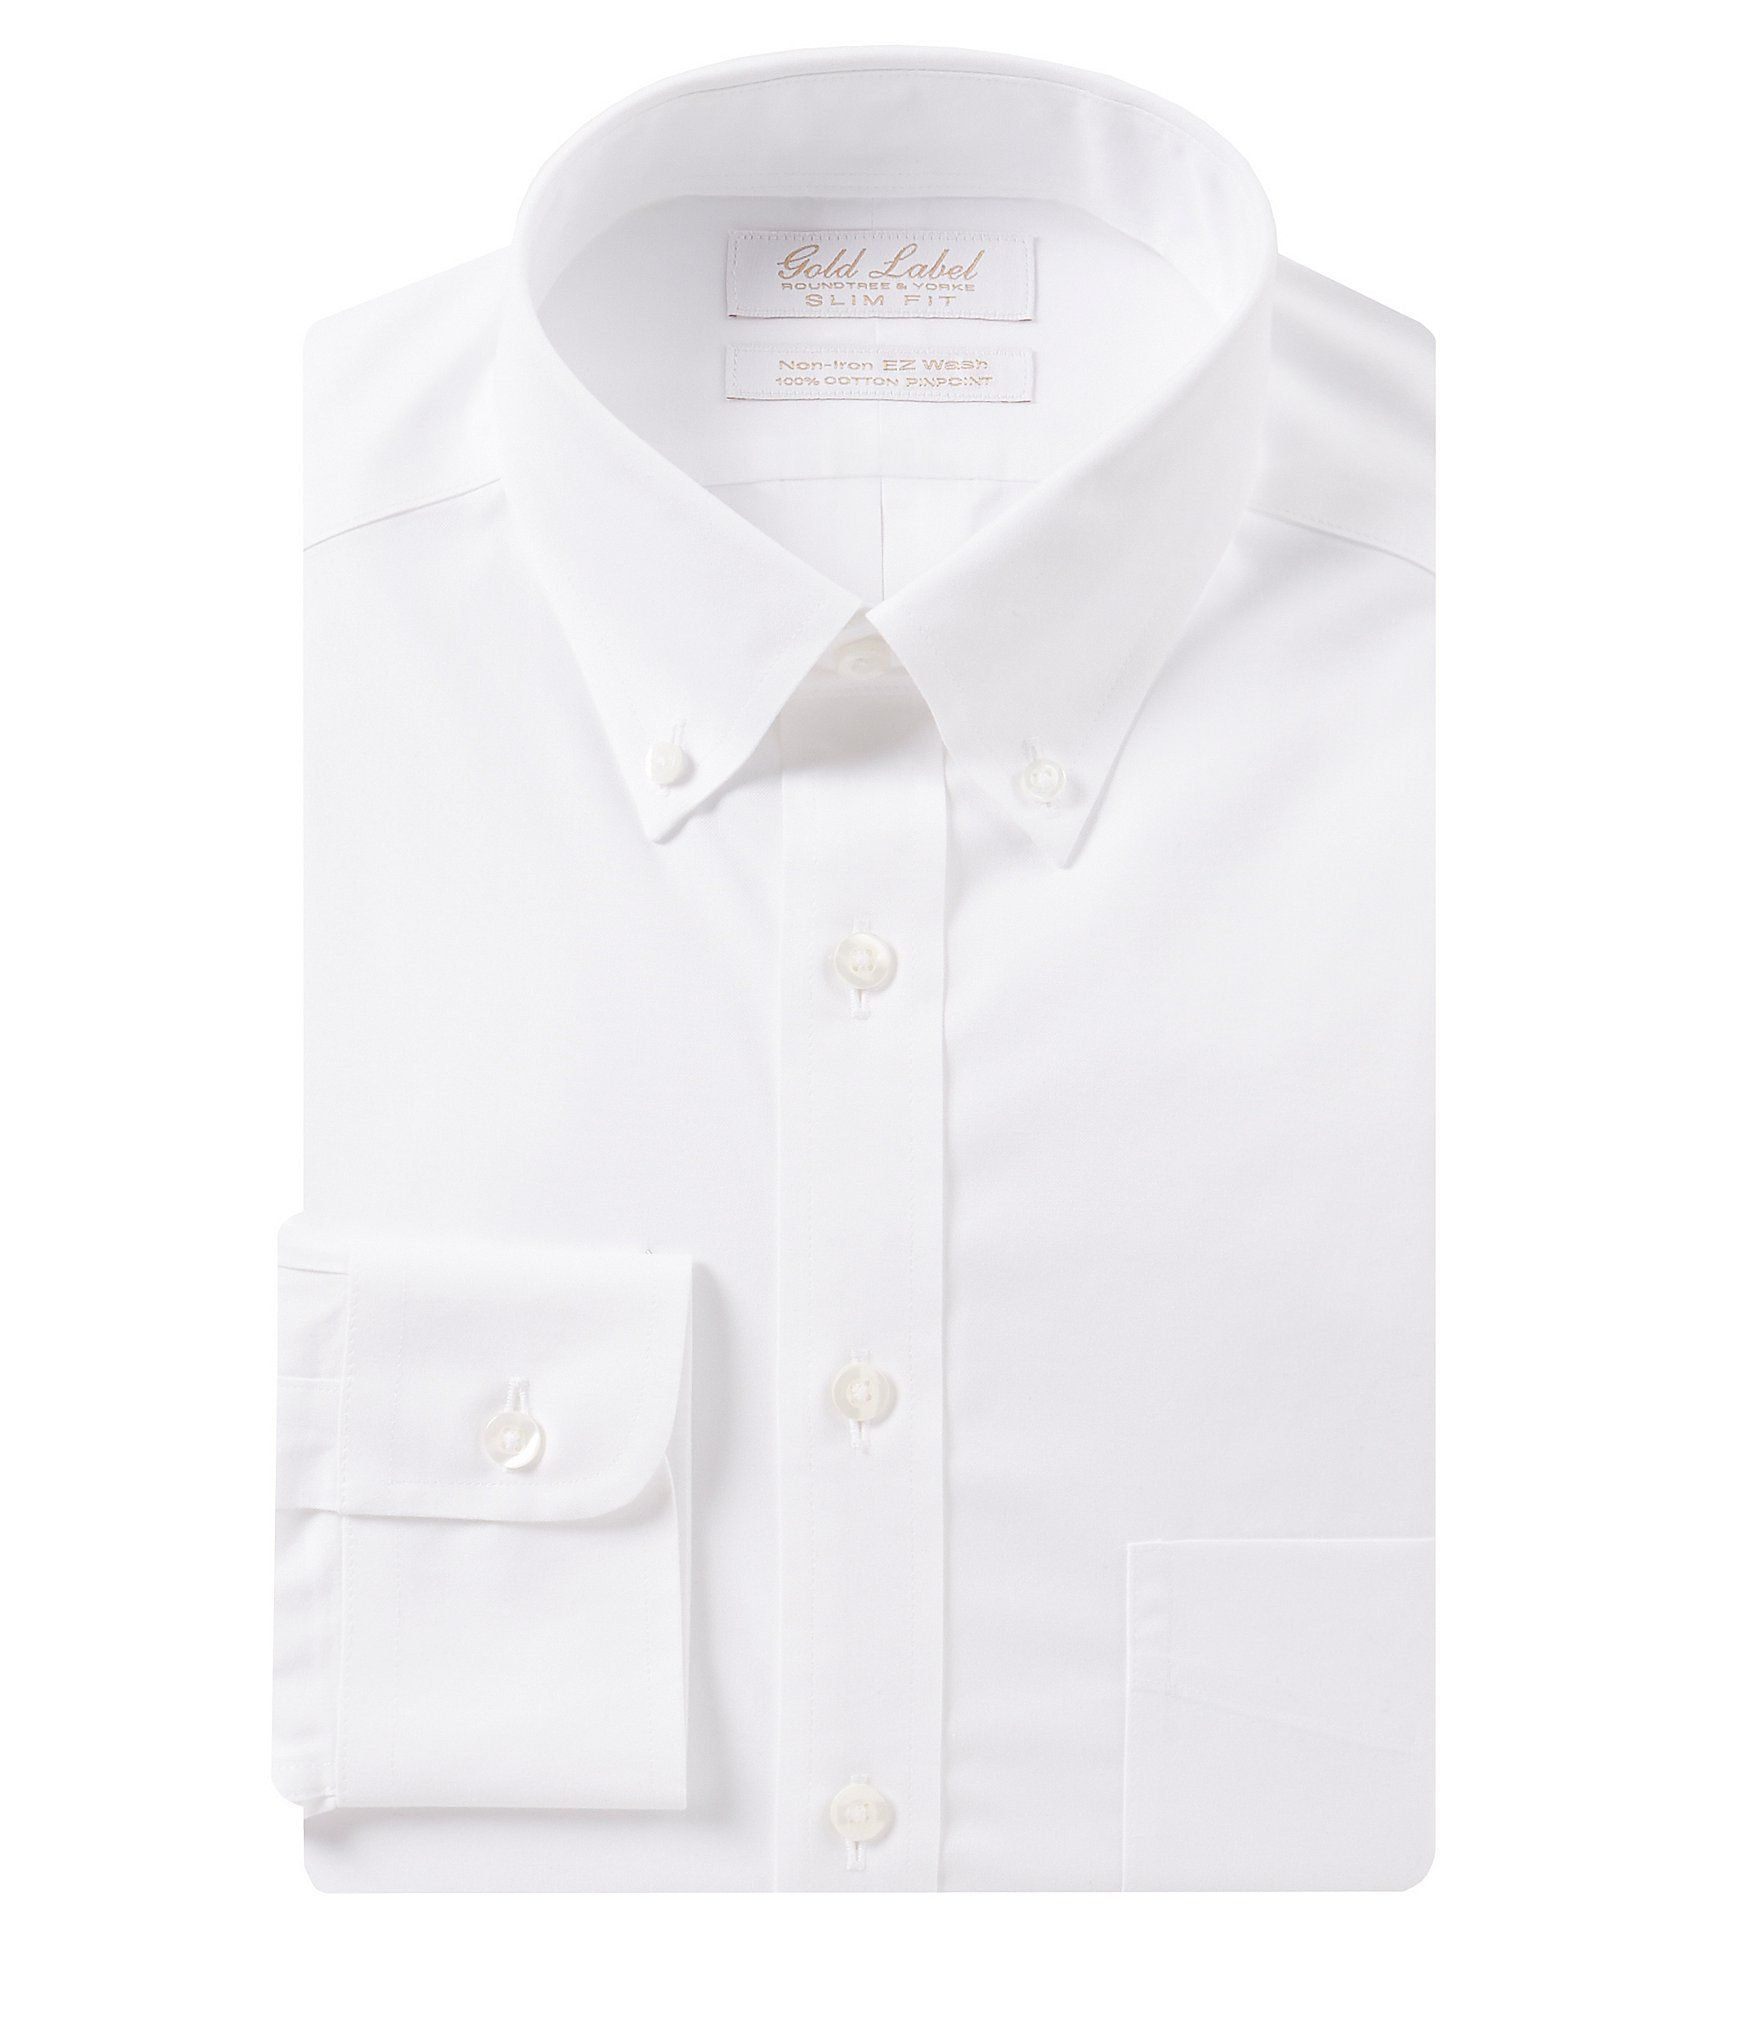 Gold Label Roundtree & Yorke Non-Iron Slim-Fit Button-Down